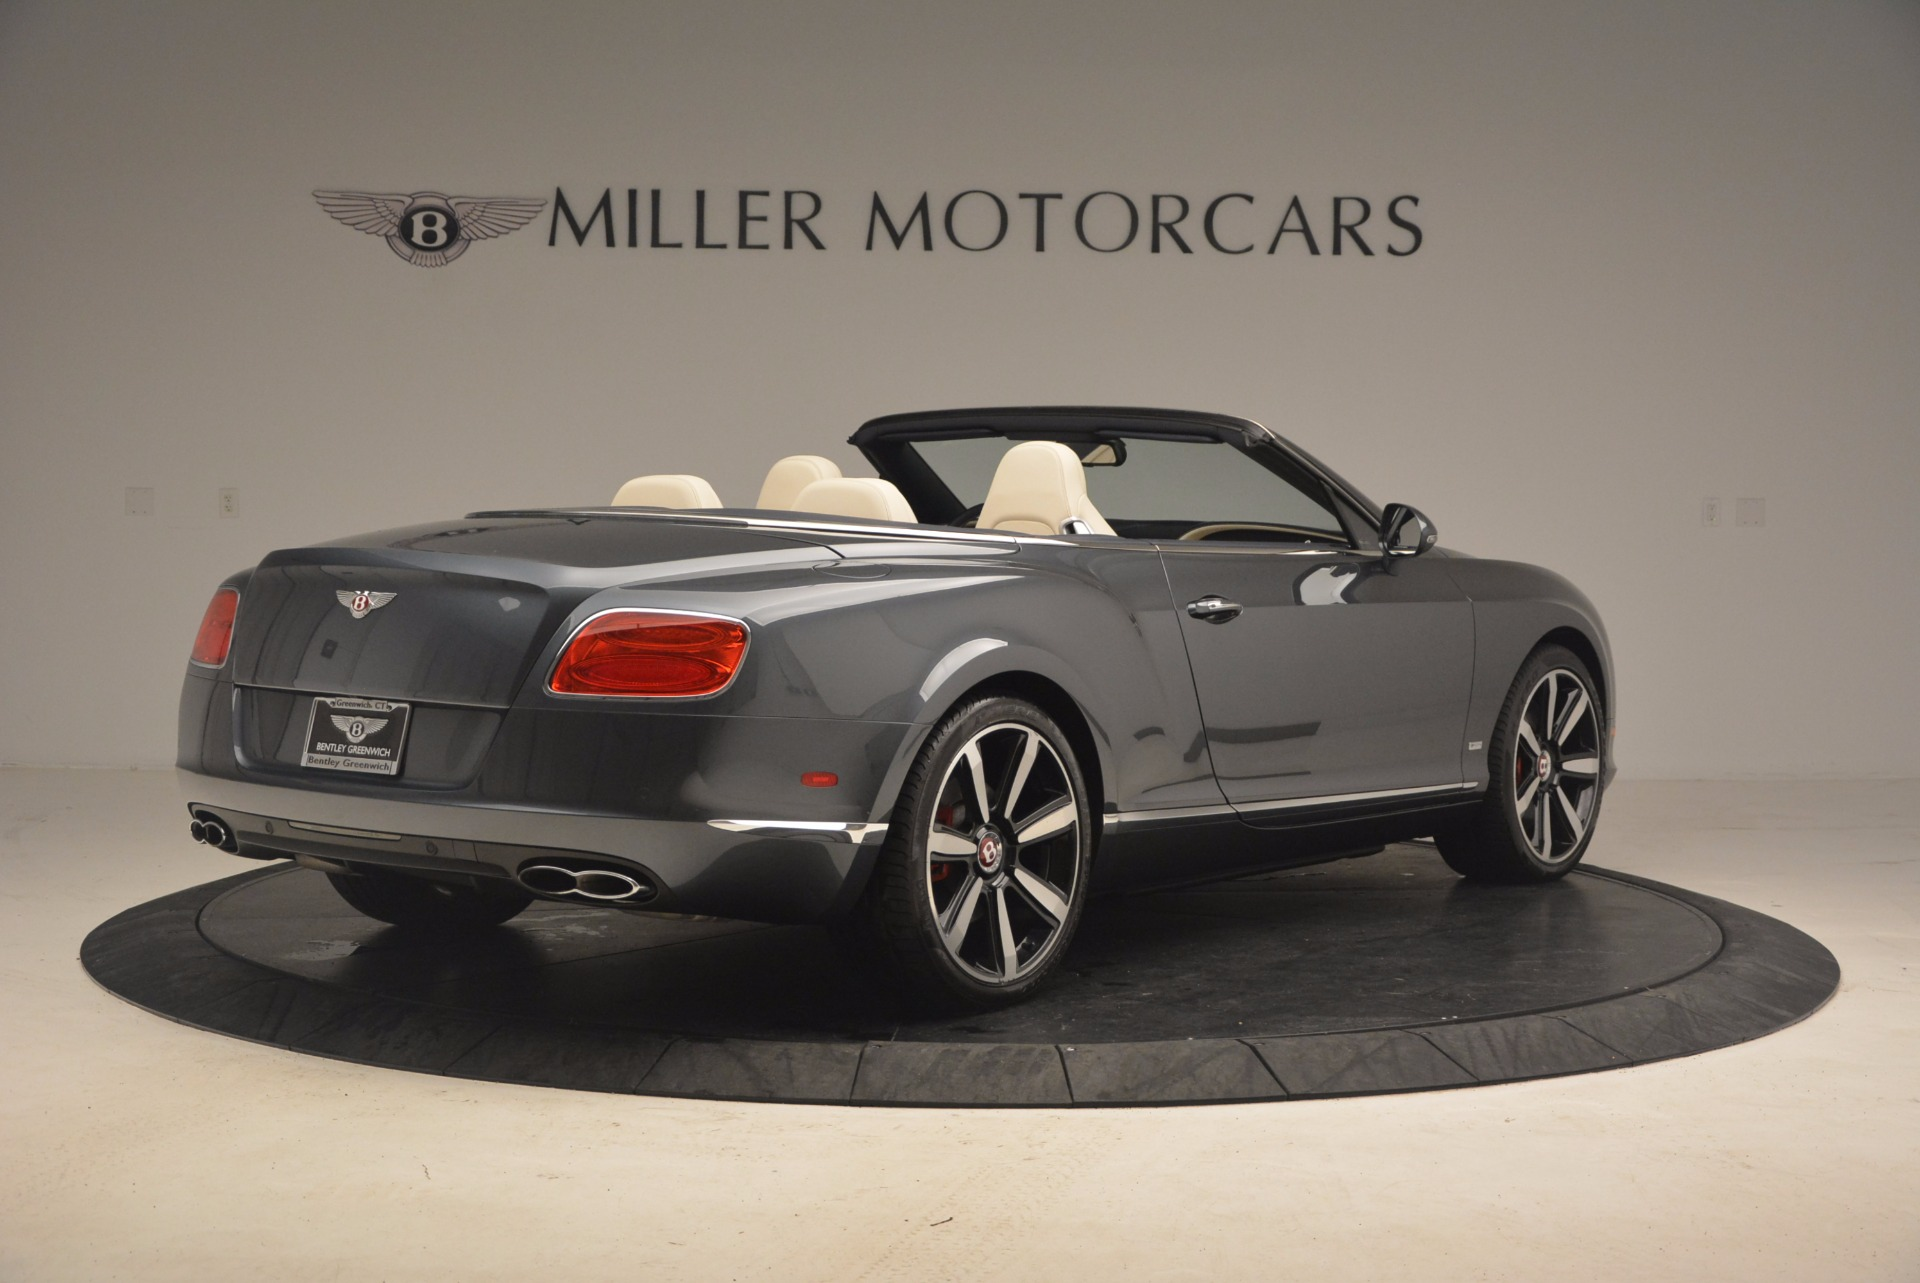 Used 2013 Bentley Continental GT V8 Le Mans Edition, 1 of 48 For Sale In Westport, CT 1288_p8